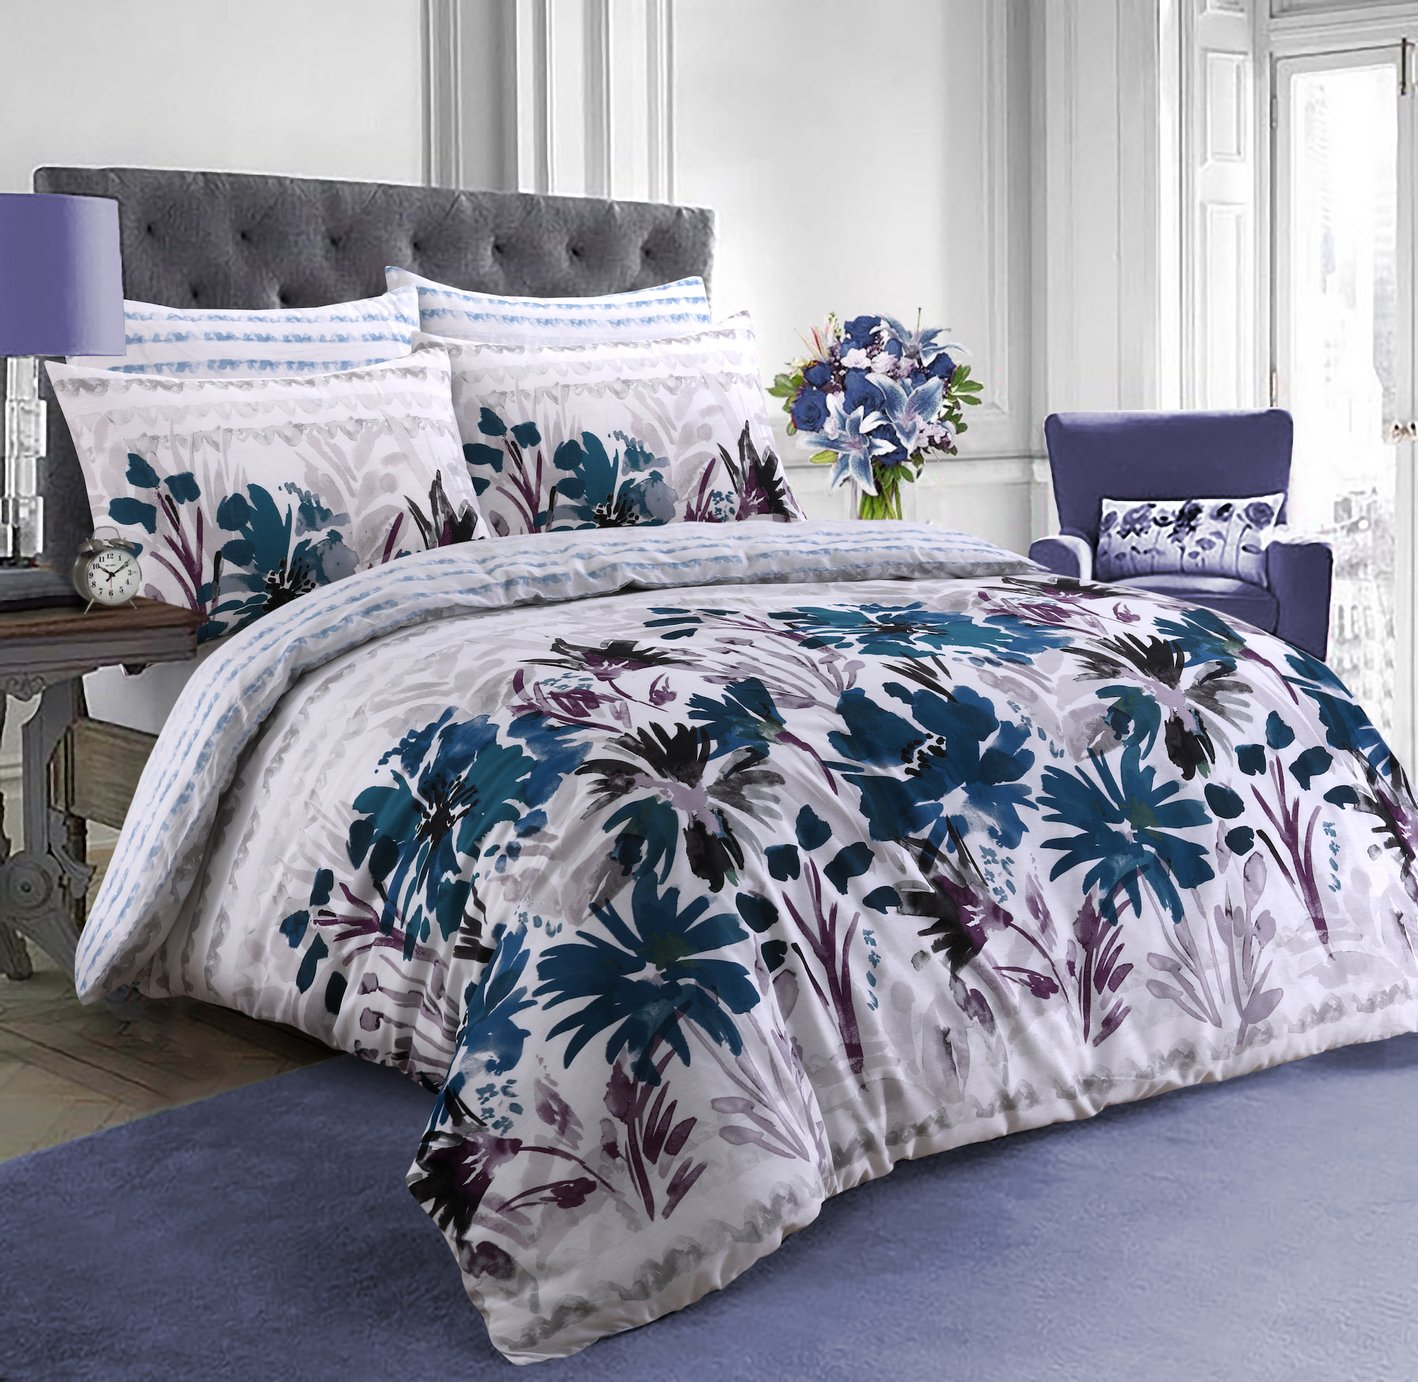 Argos Home Teal Garden Flowers Bedding Set - Double